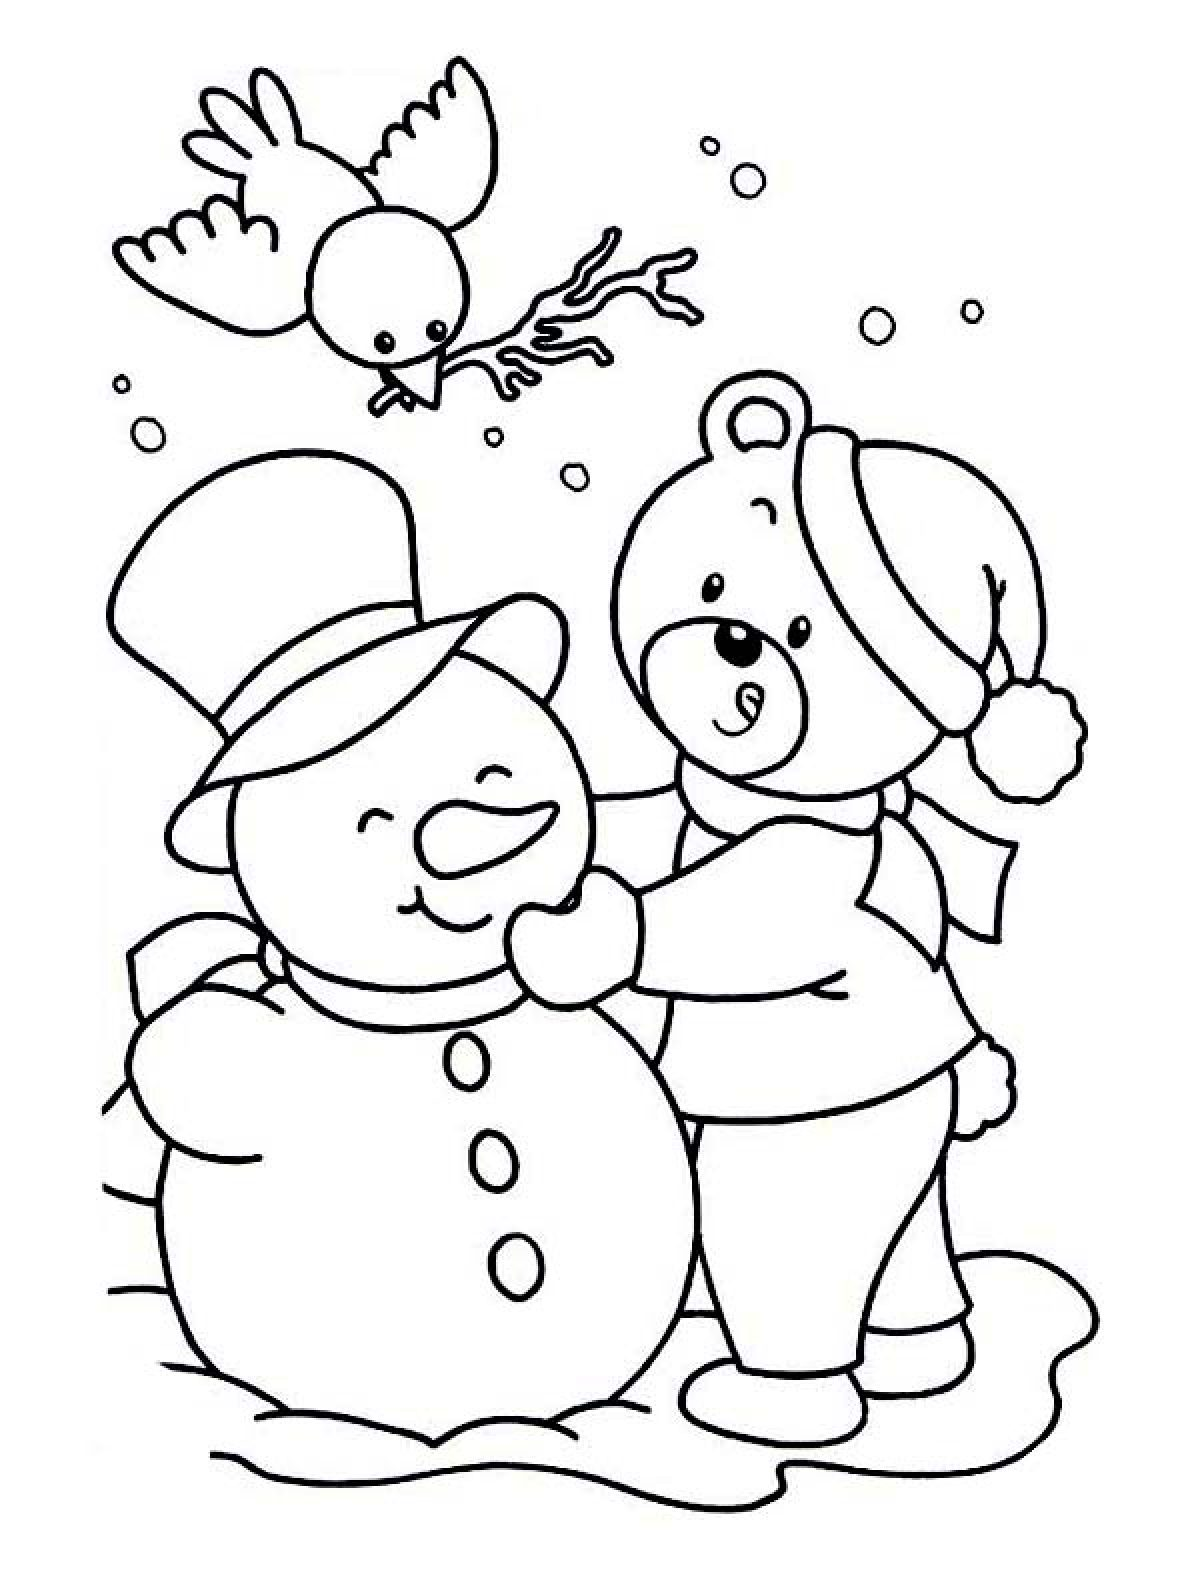 Snowman Printable Coloring Pages